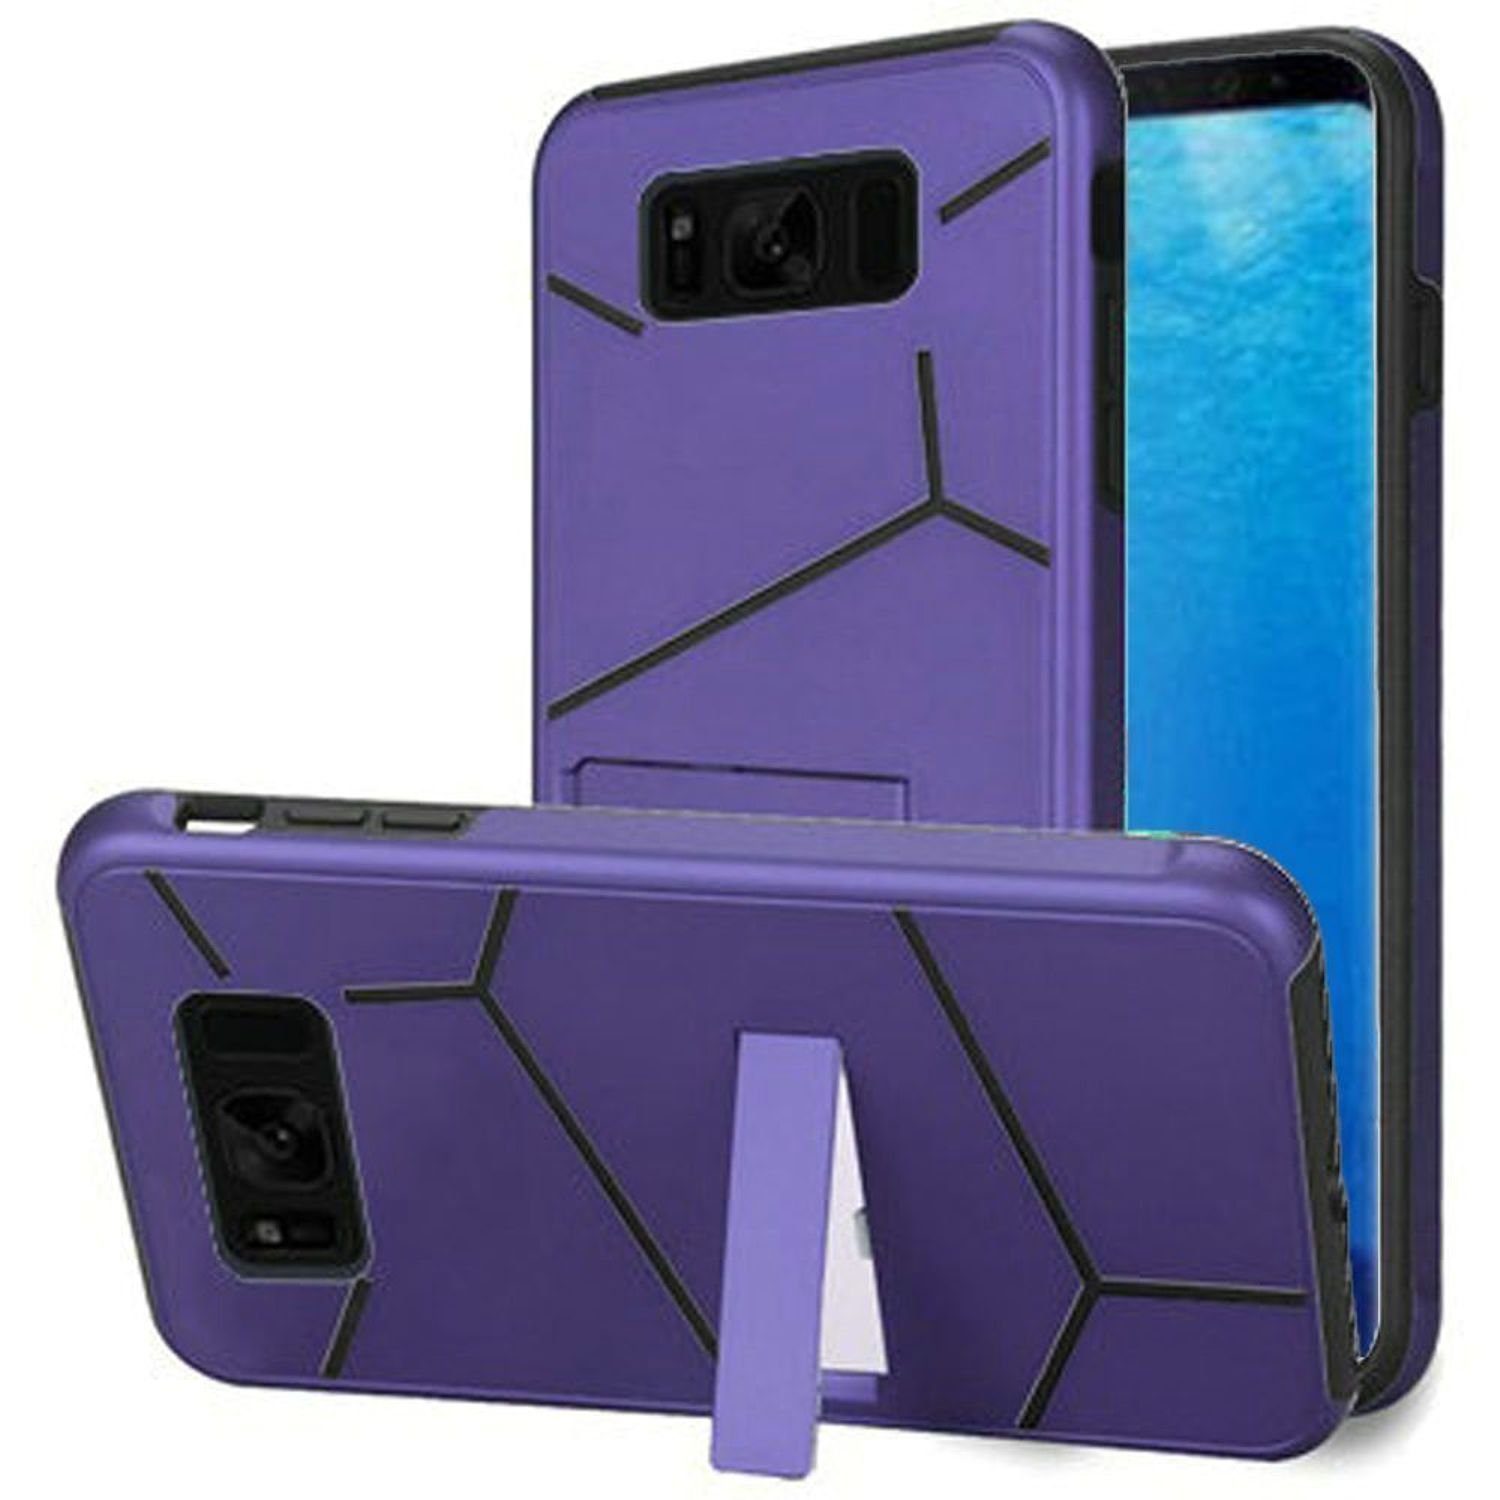 Samsung Galaxy S8 Case, by Insten Dual Layer [Shock Absorbing] Hybrid Stand Hard Plastic/Soft TPU Rubber Case Phone Cover For Samsung Galaxy S8, Purple/Black